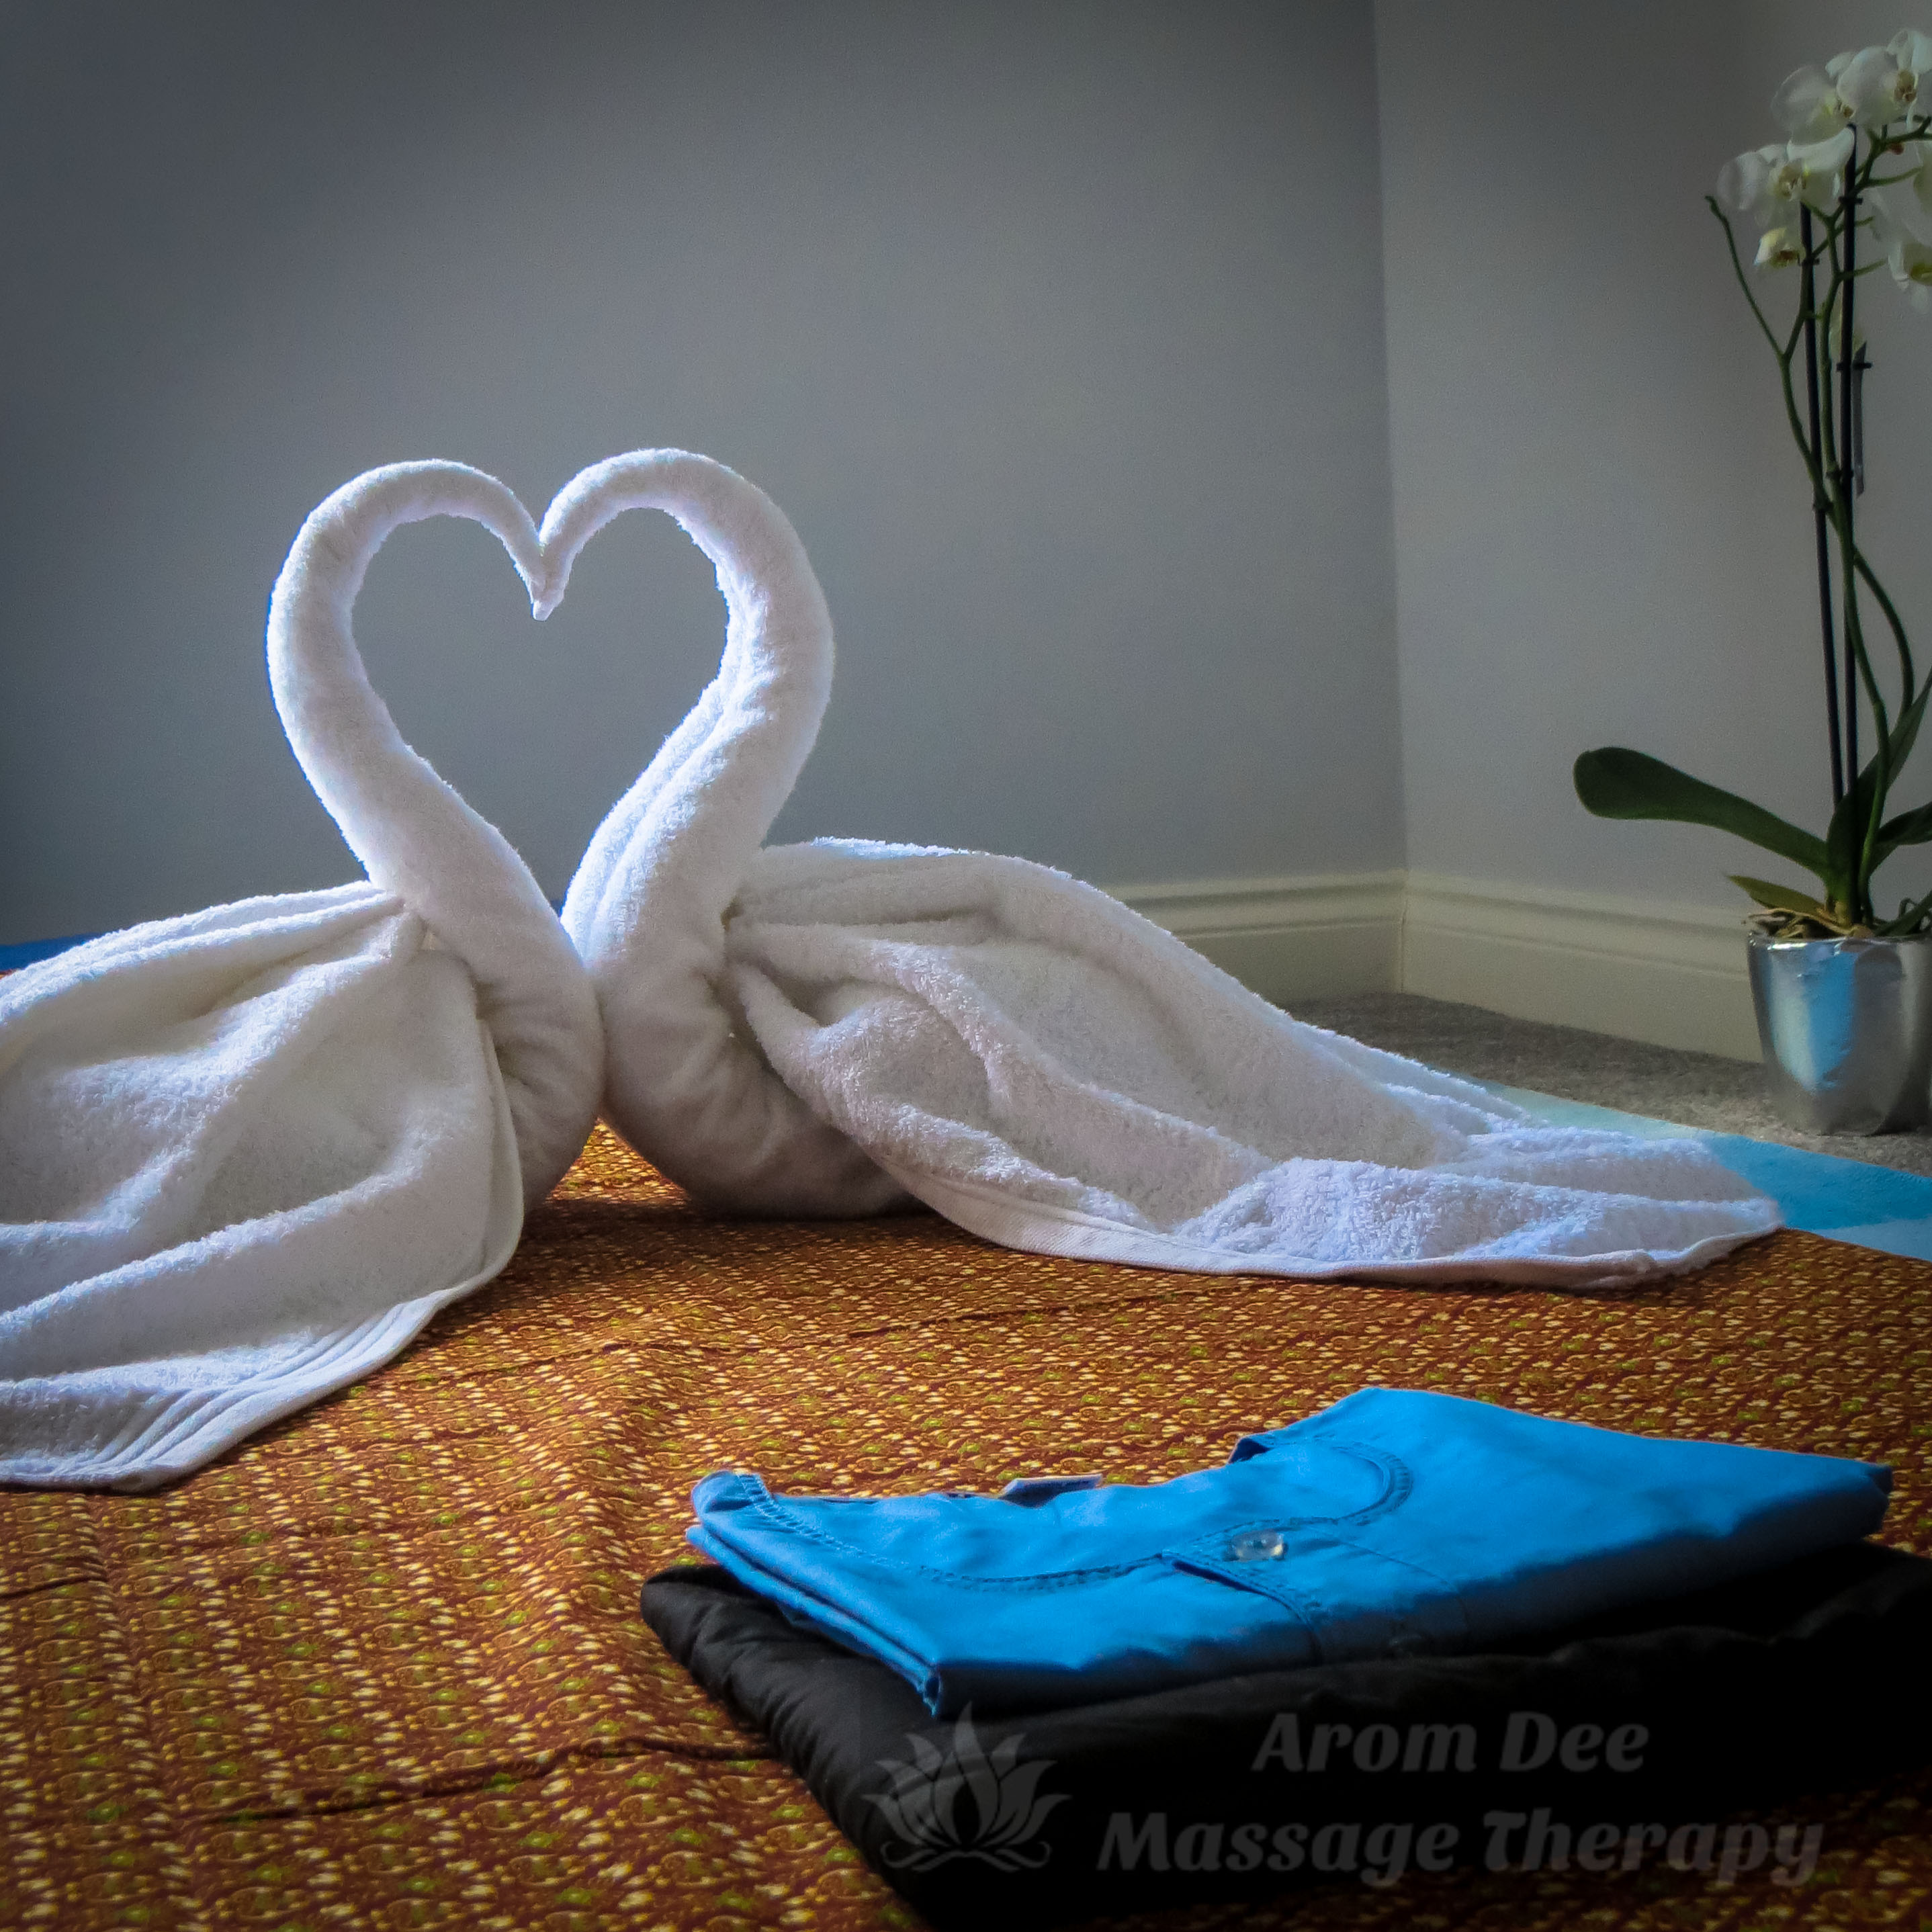 Folded client's Thai-style pyjamas in forground on floor pad with two white towels shaped into swans, their necks forming shape of a heart